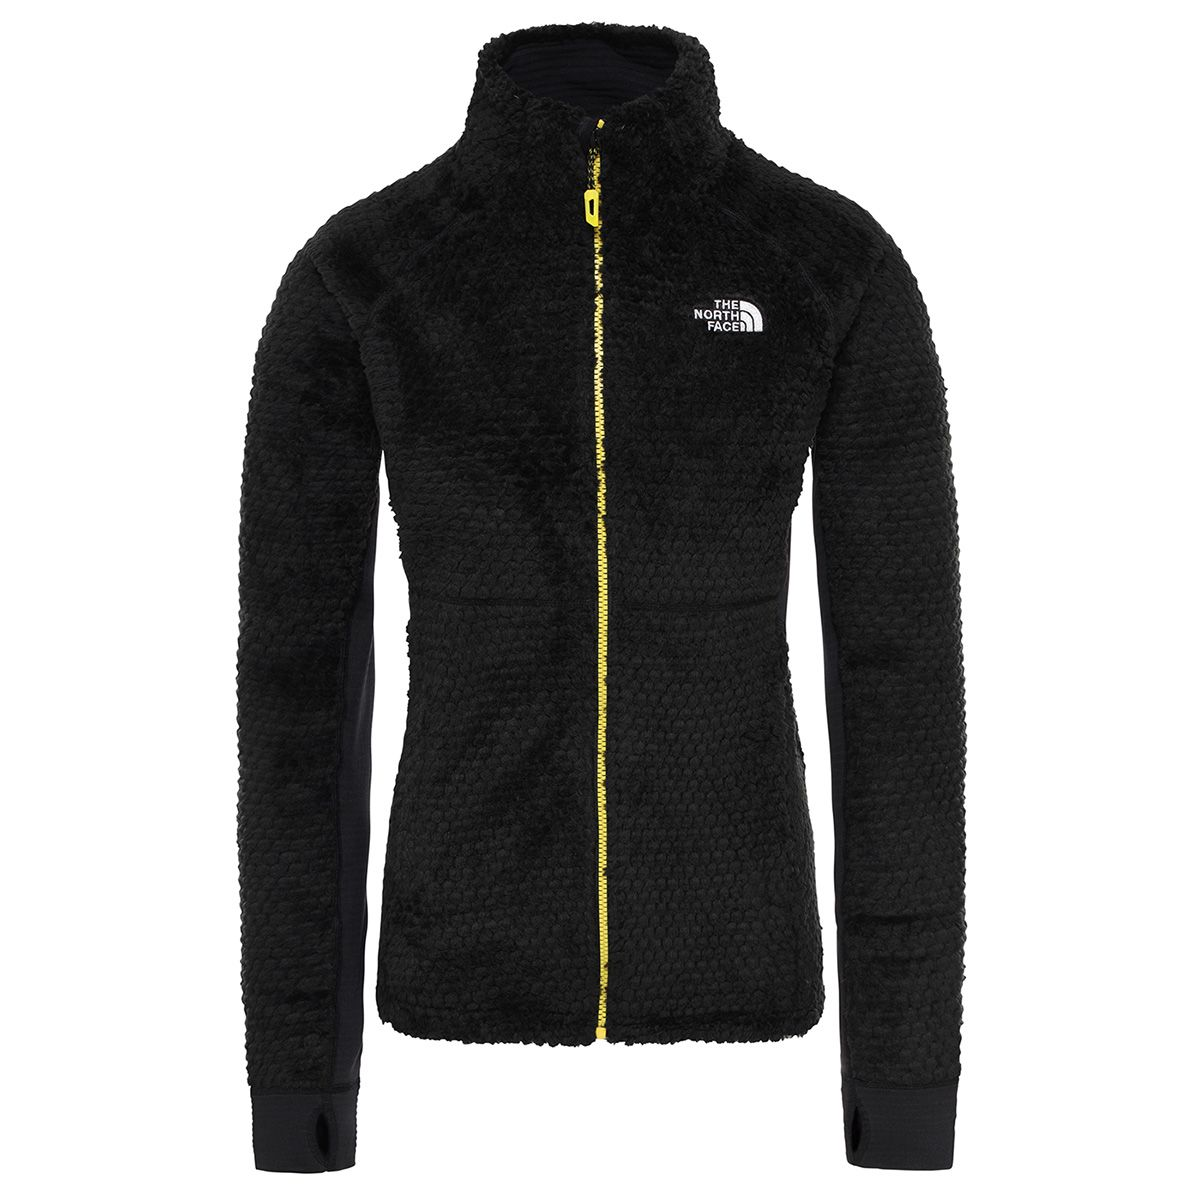 The North Face Damen Shimasu Fleece Jacke (Größe S, Schwarz) | Fleecejacken > Damen